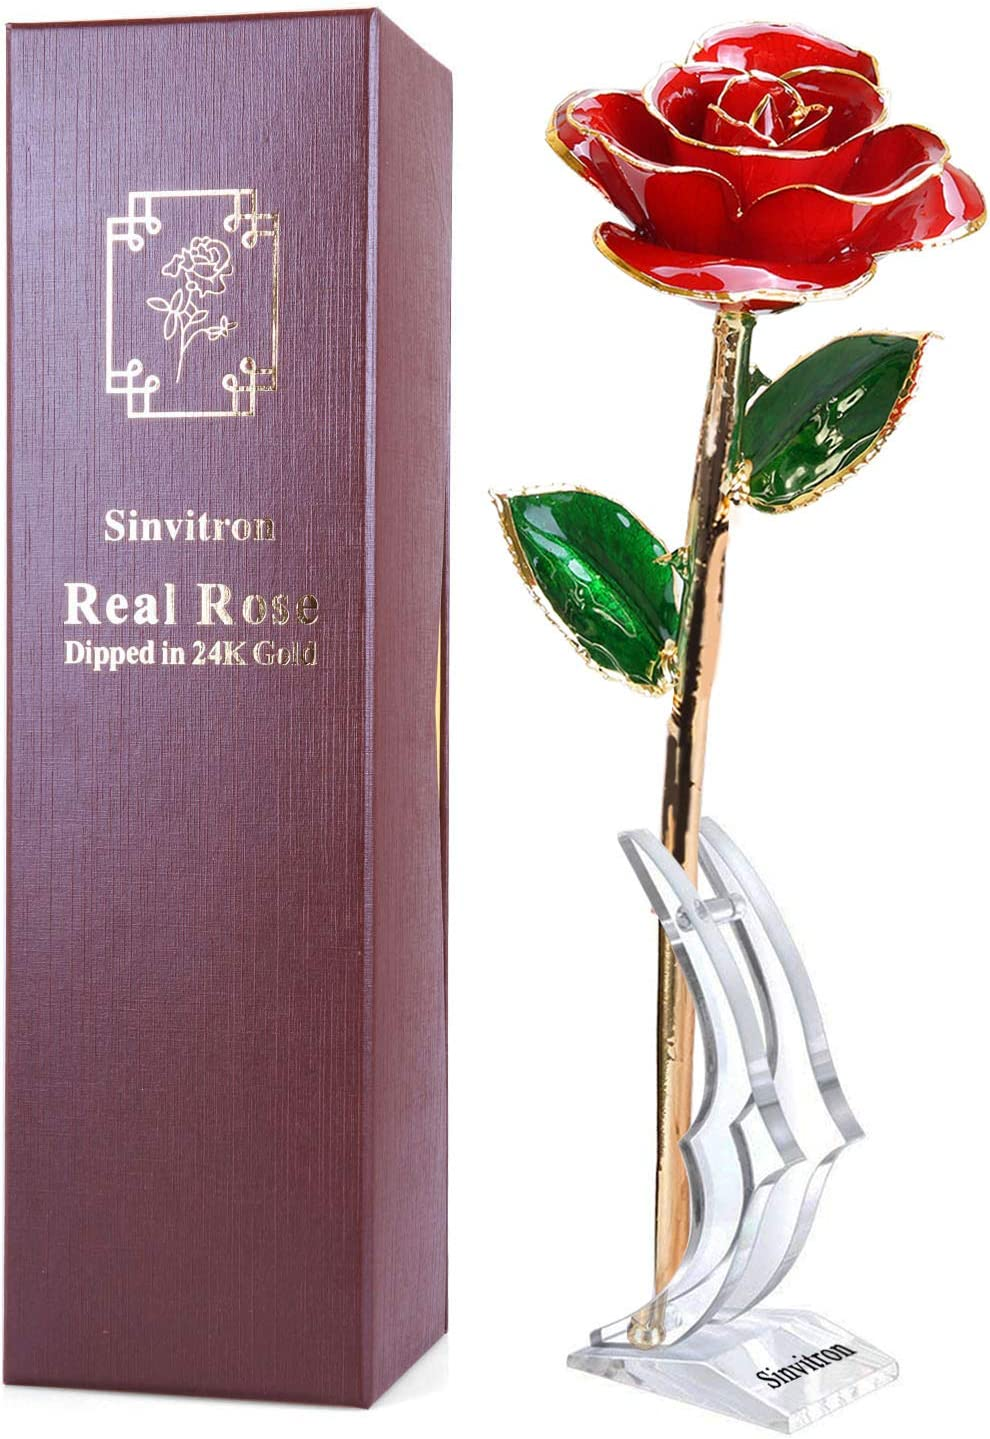 Amazon Com Gold Dipped Rose Sinvitron Long Stem 24k Gold Dipped Real Rose Lasted Forever With Stand Best Anniversary Gifts For Her Home Kitchen